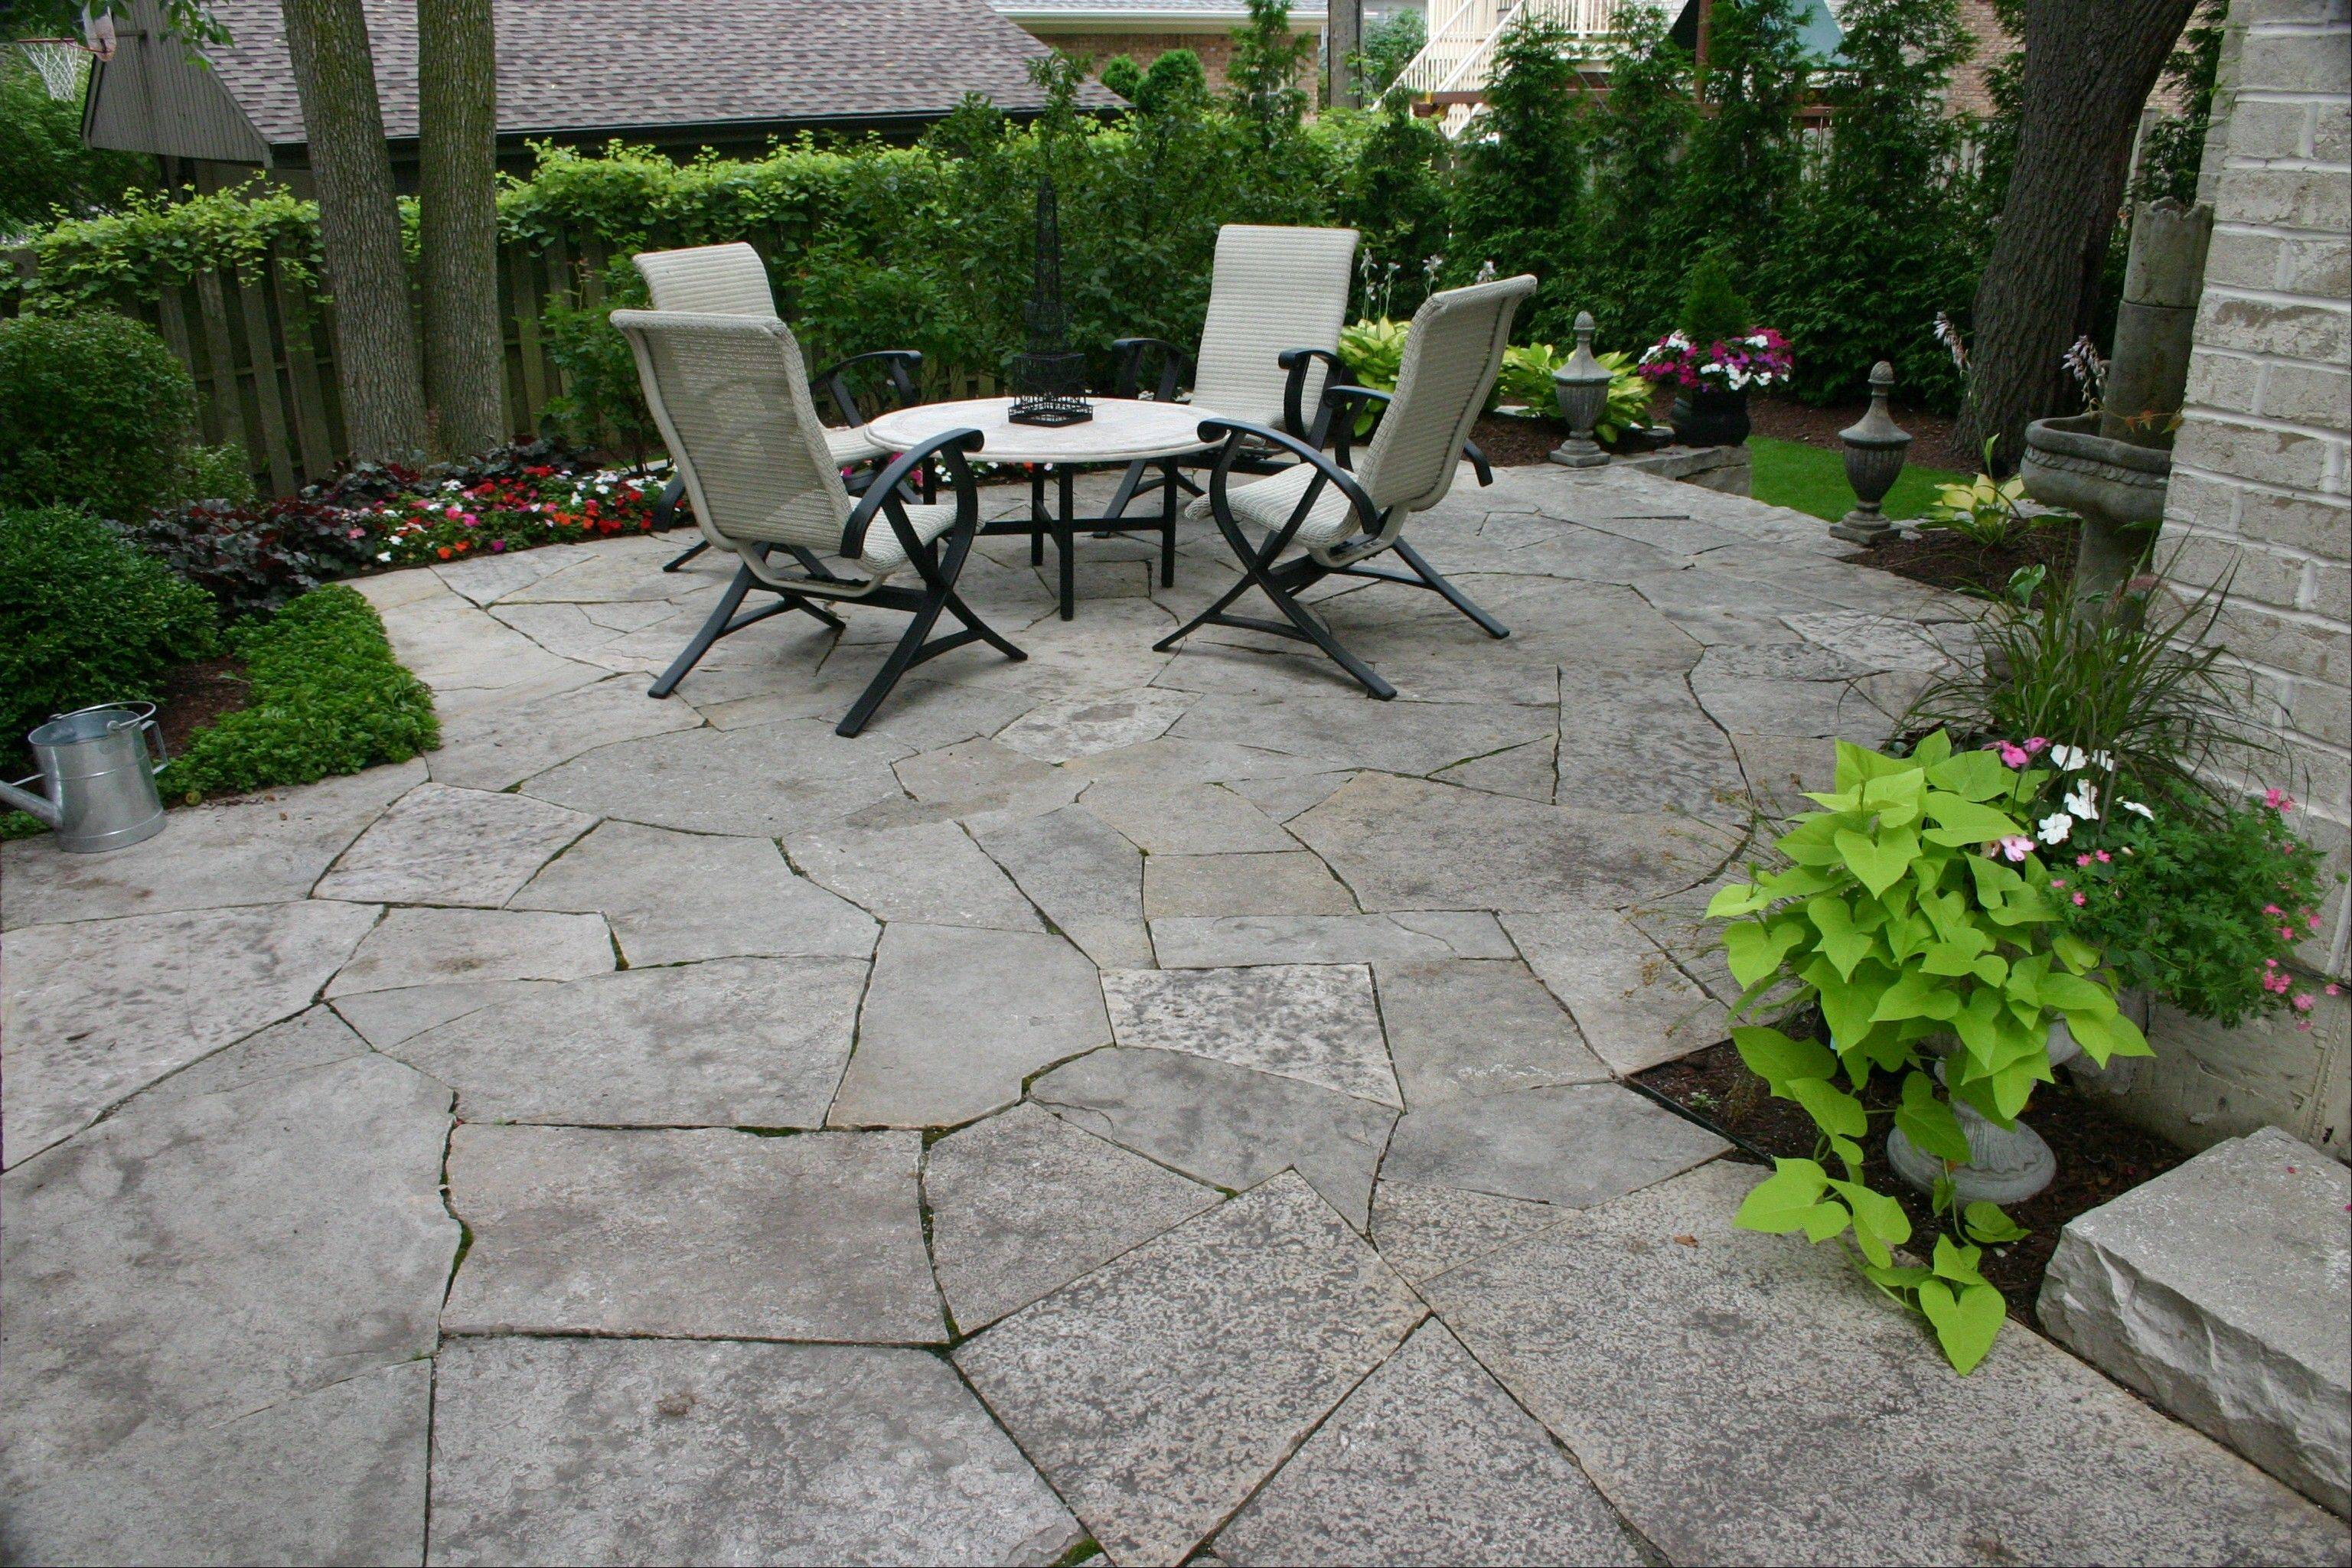 Decorative stone is an option to the standard poured concrete patio or wooded deck buyers consider for their new homes.